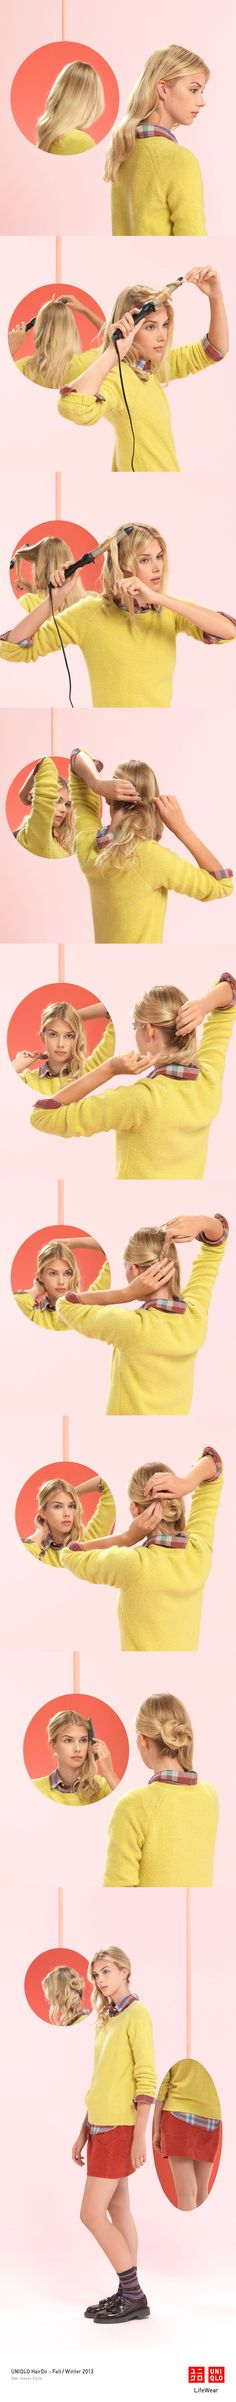 """""""THE ROLL AND WAVE"""" : Simple and fun, this style looks great on the go. LooseCurls Click the image for DIY instructions! #Hair #Hairstyle #DIY #UNIQLO #HairDo"""